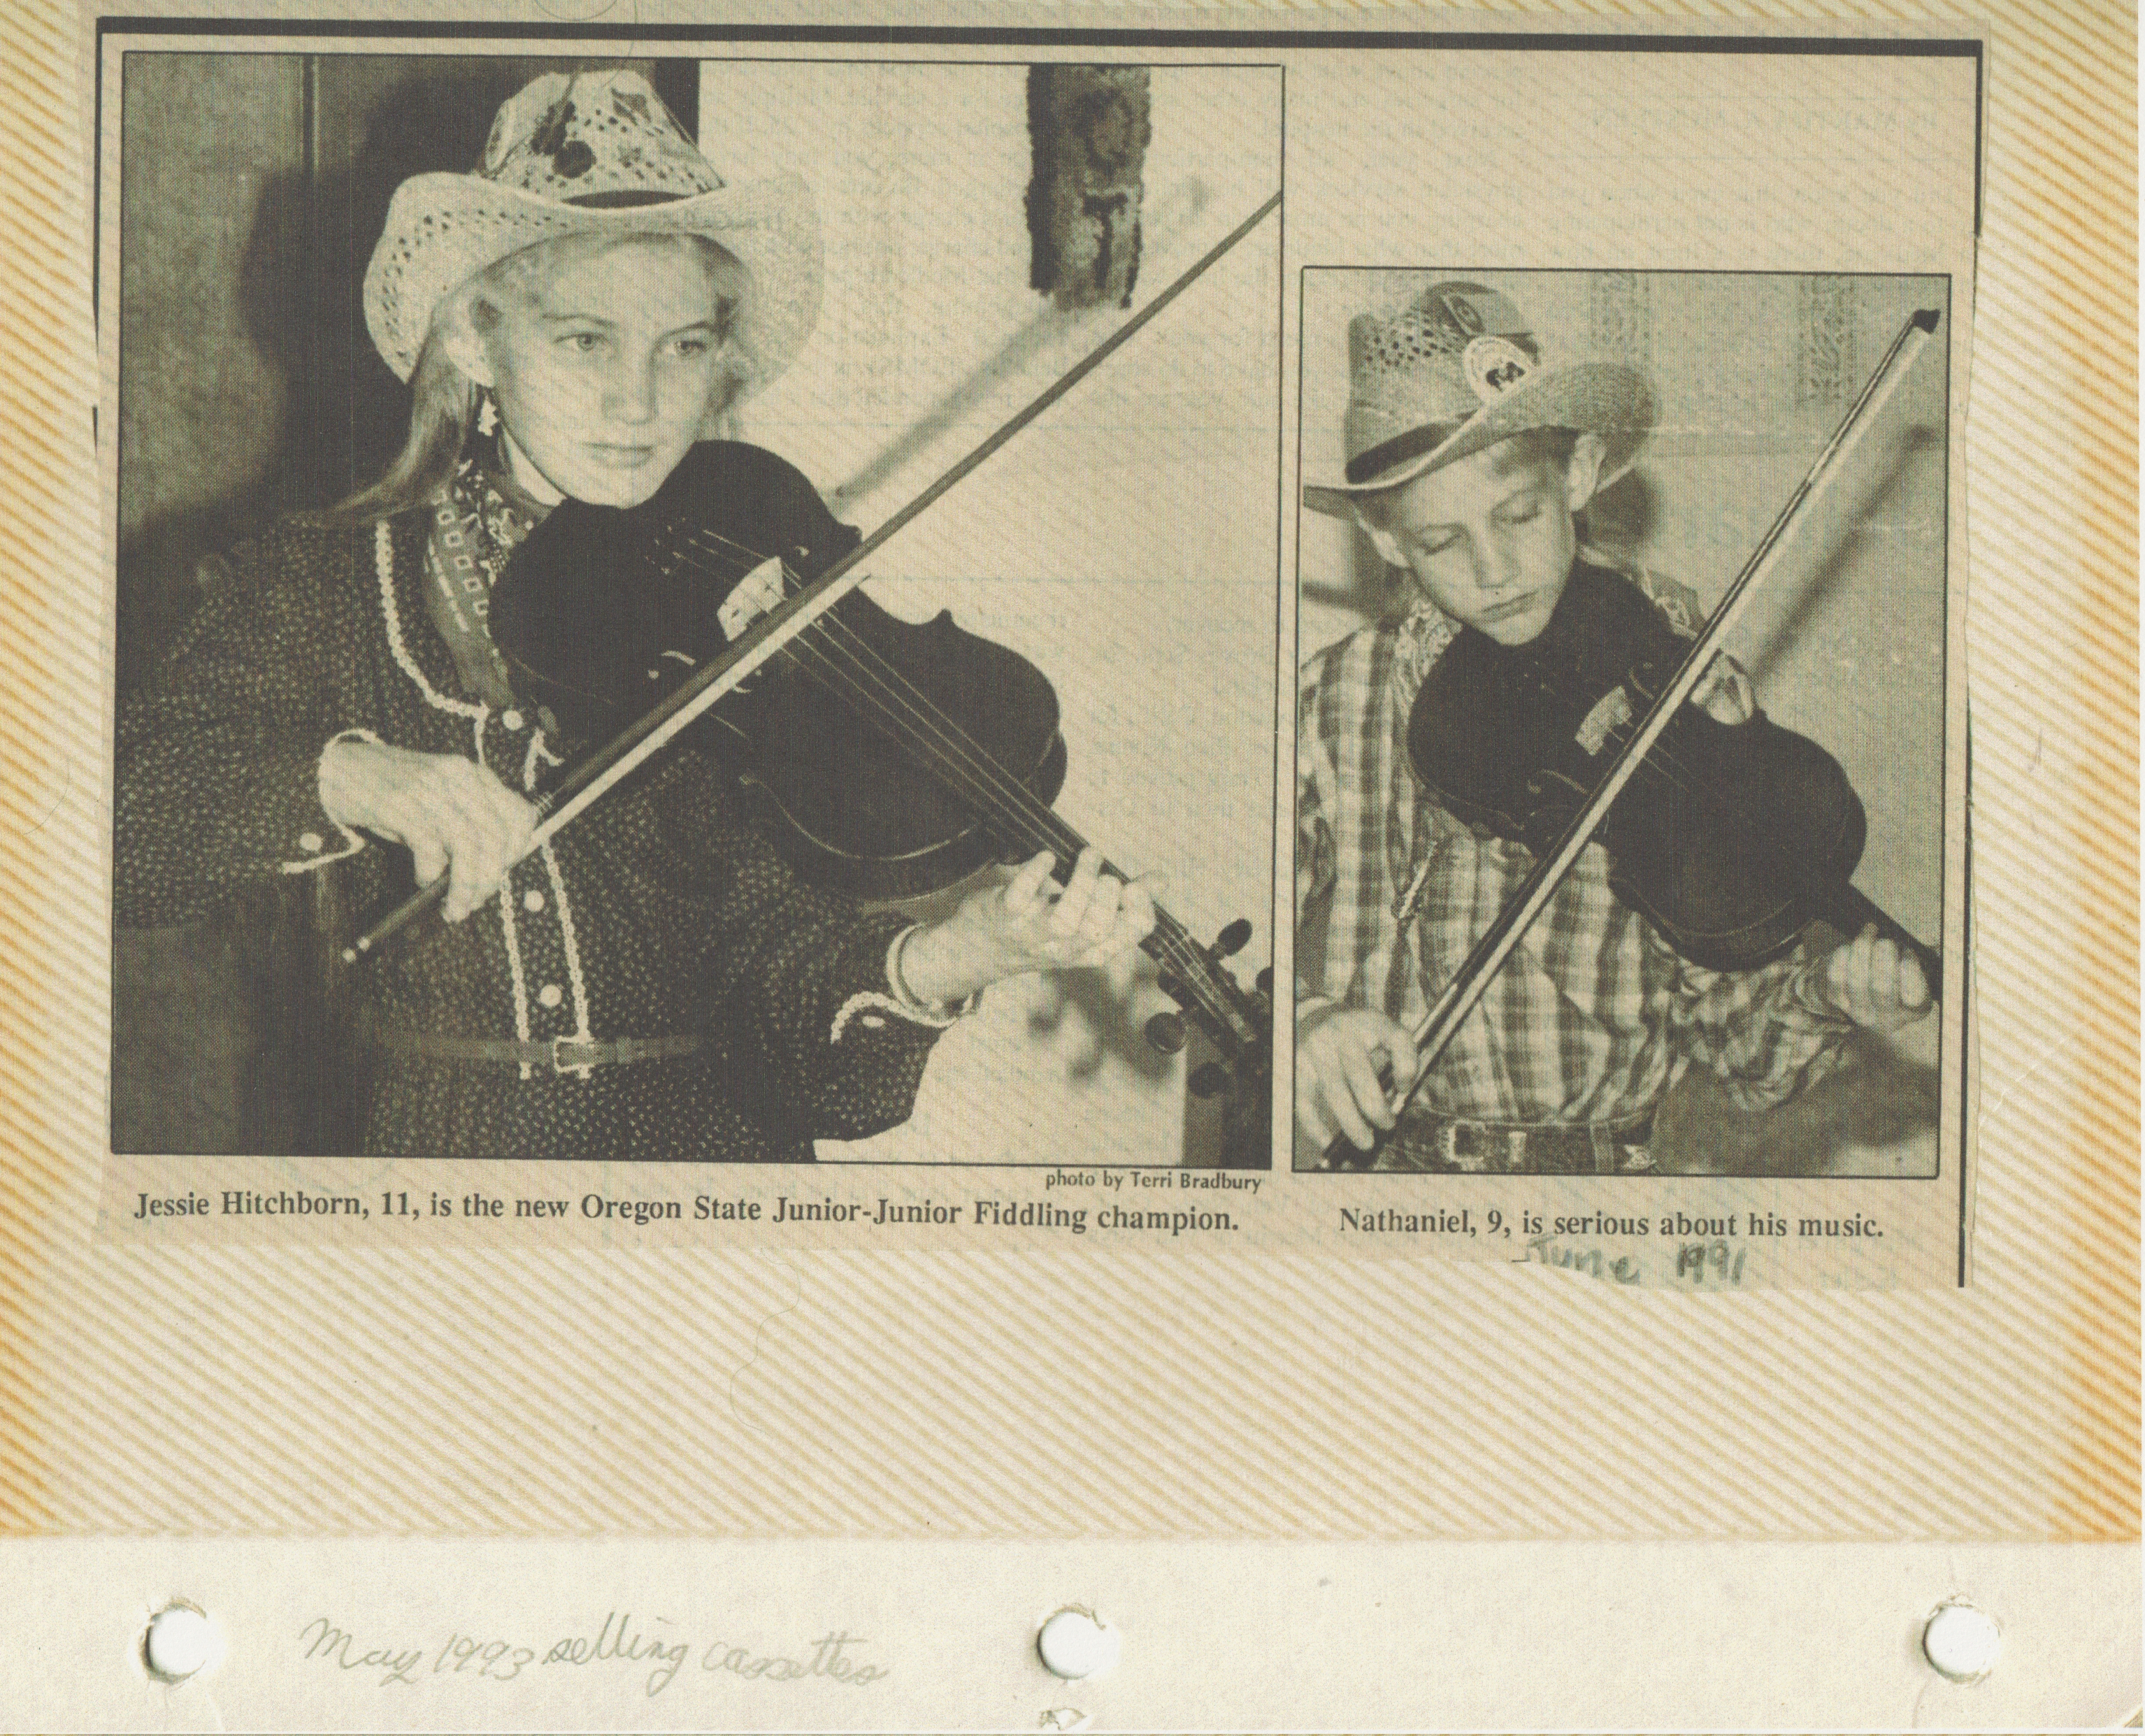 1991-06 - Jessica Hitchborn, 11 years old, Nathaniel, 9, Fiddling. May 93 - Selling Cassettes.jpg